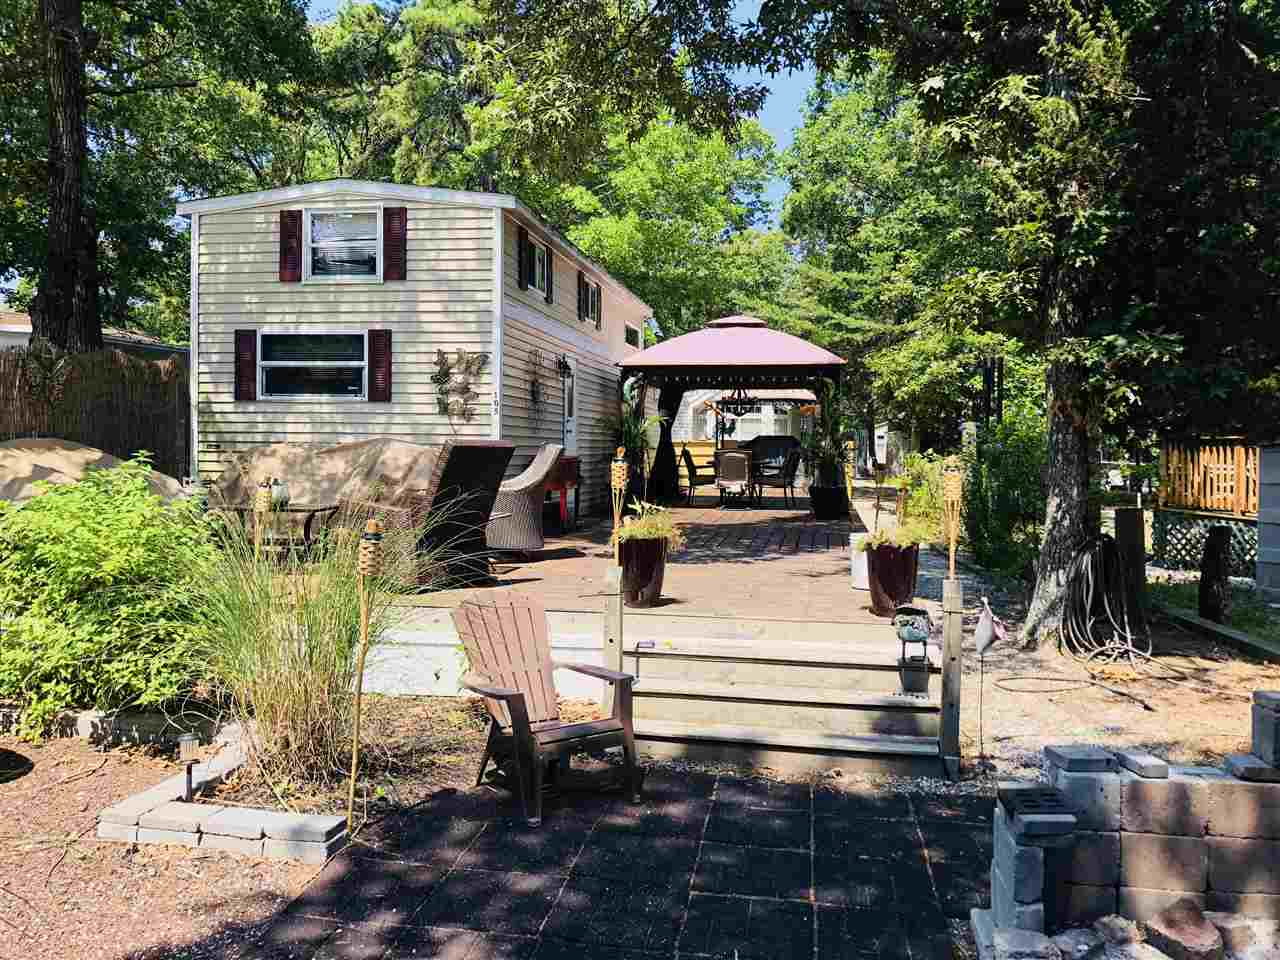 206 Stagecoach Rd  - Cape May Court House